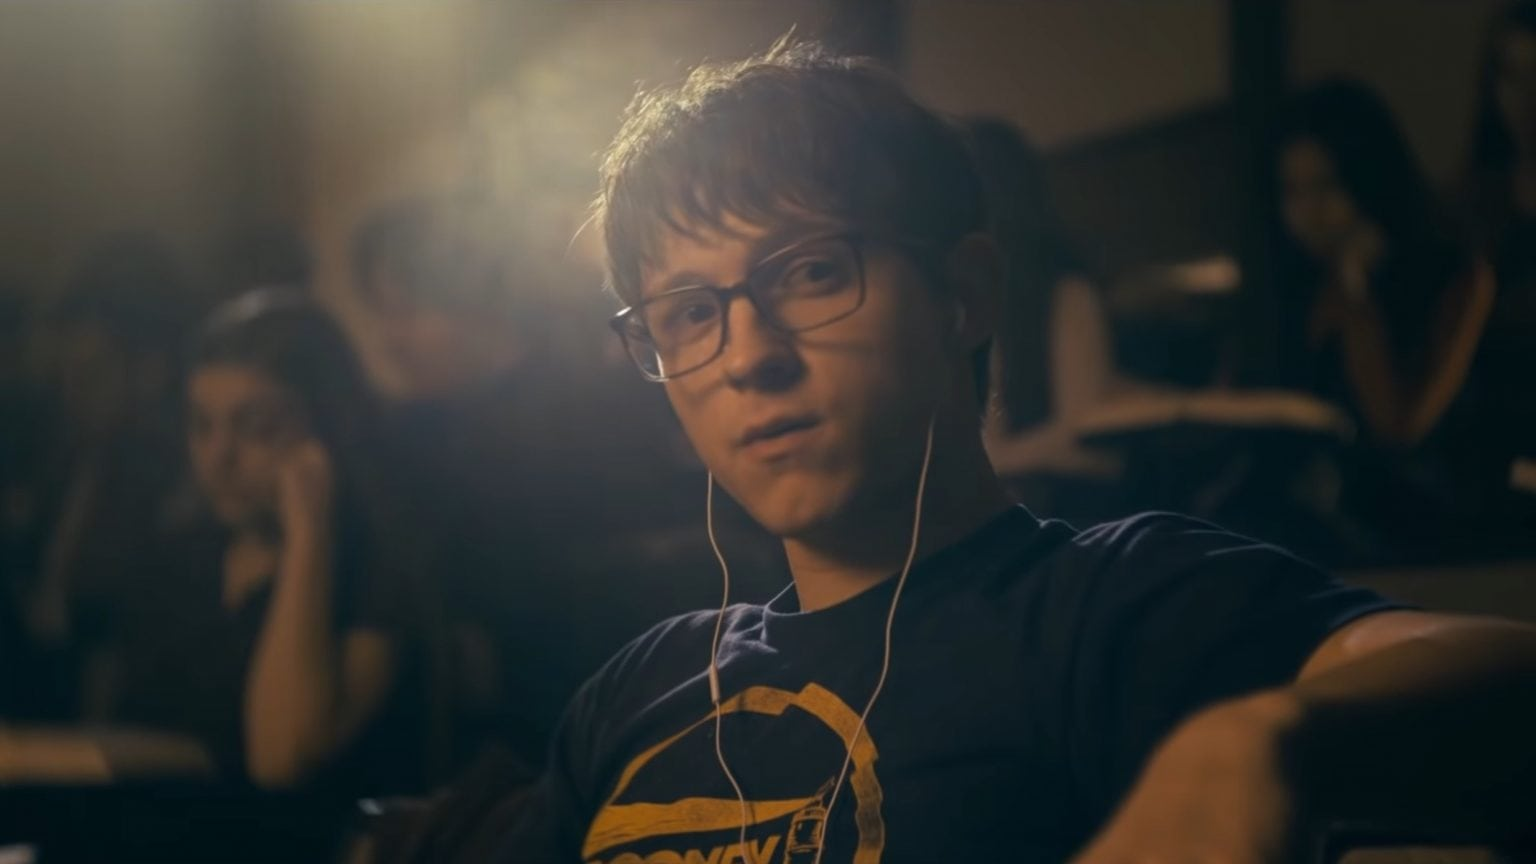 Tom Holland's 'The Crowded Room' explores mental illness for Apple TV+